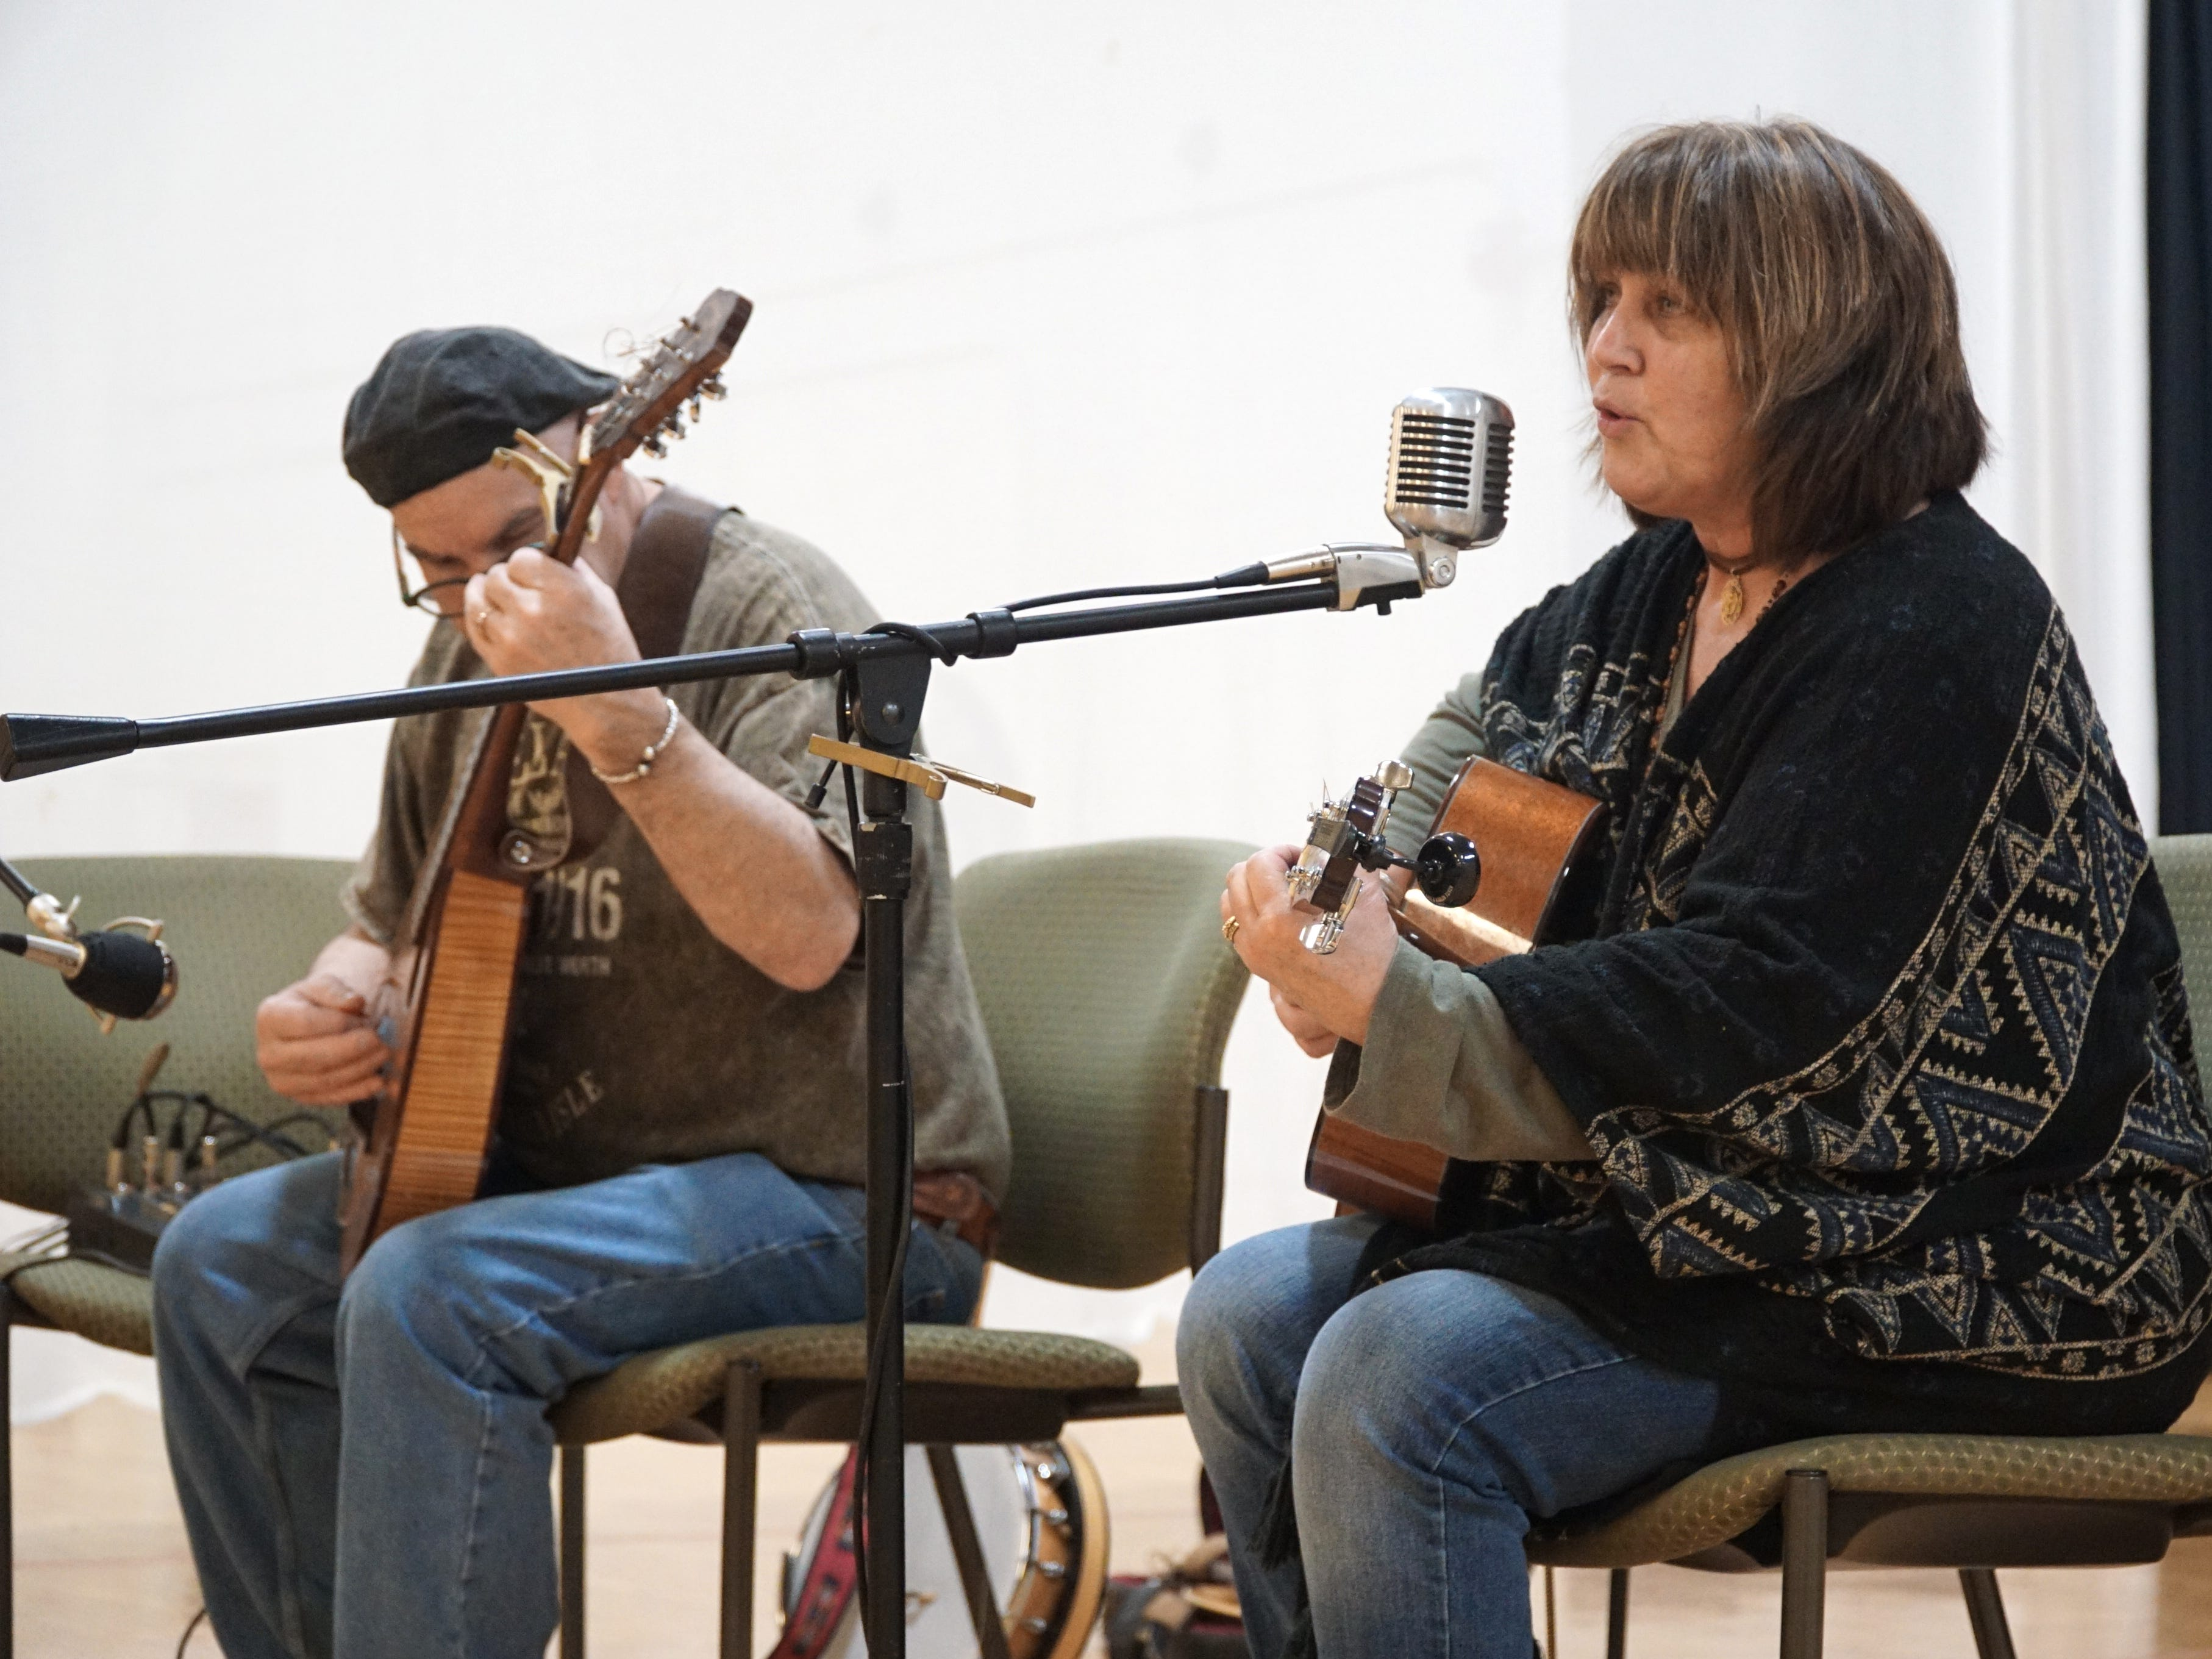 Ziggie Zeitler, left, and Susan O'Rourke performed for the St. Patrick's Day luncheon crowd at the Northville Community Center.